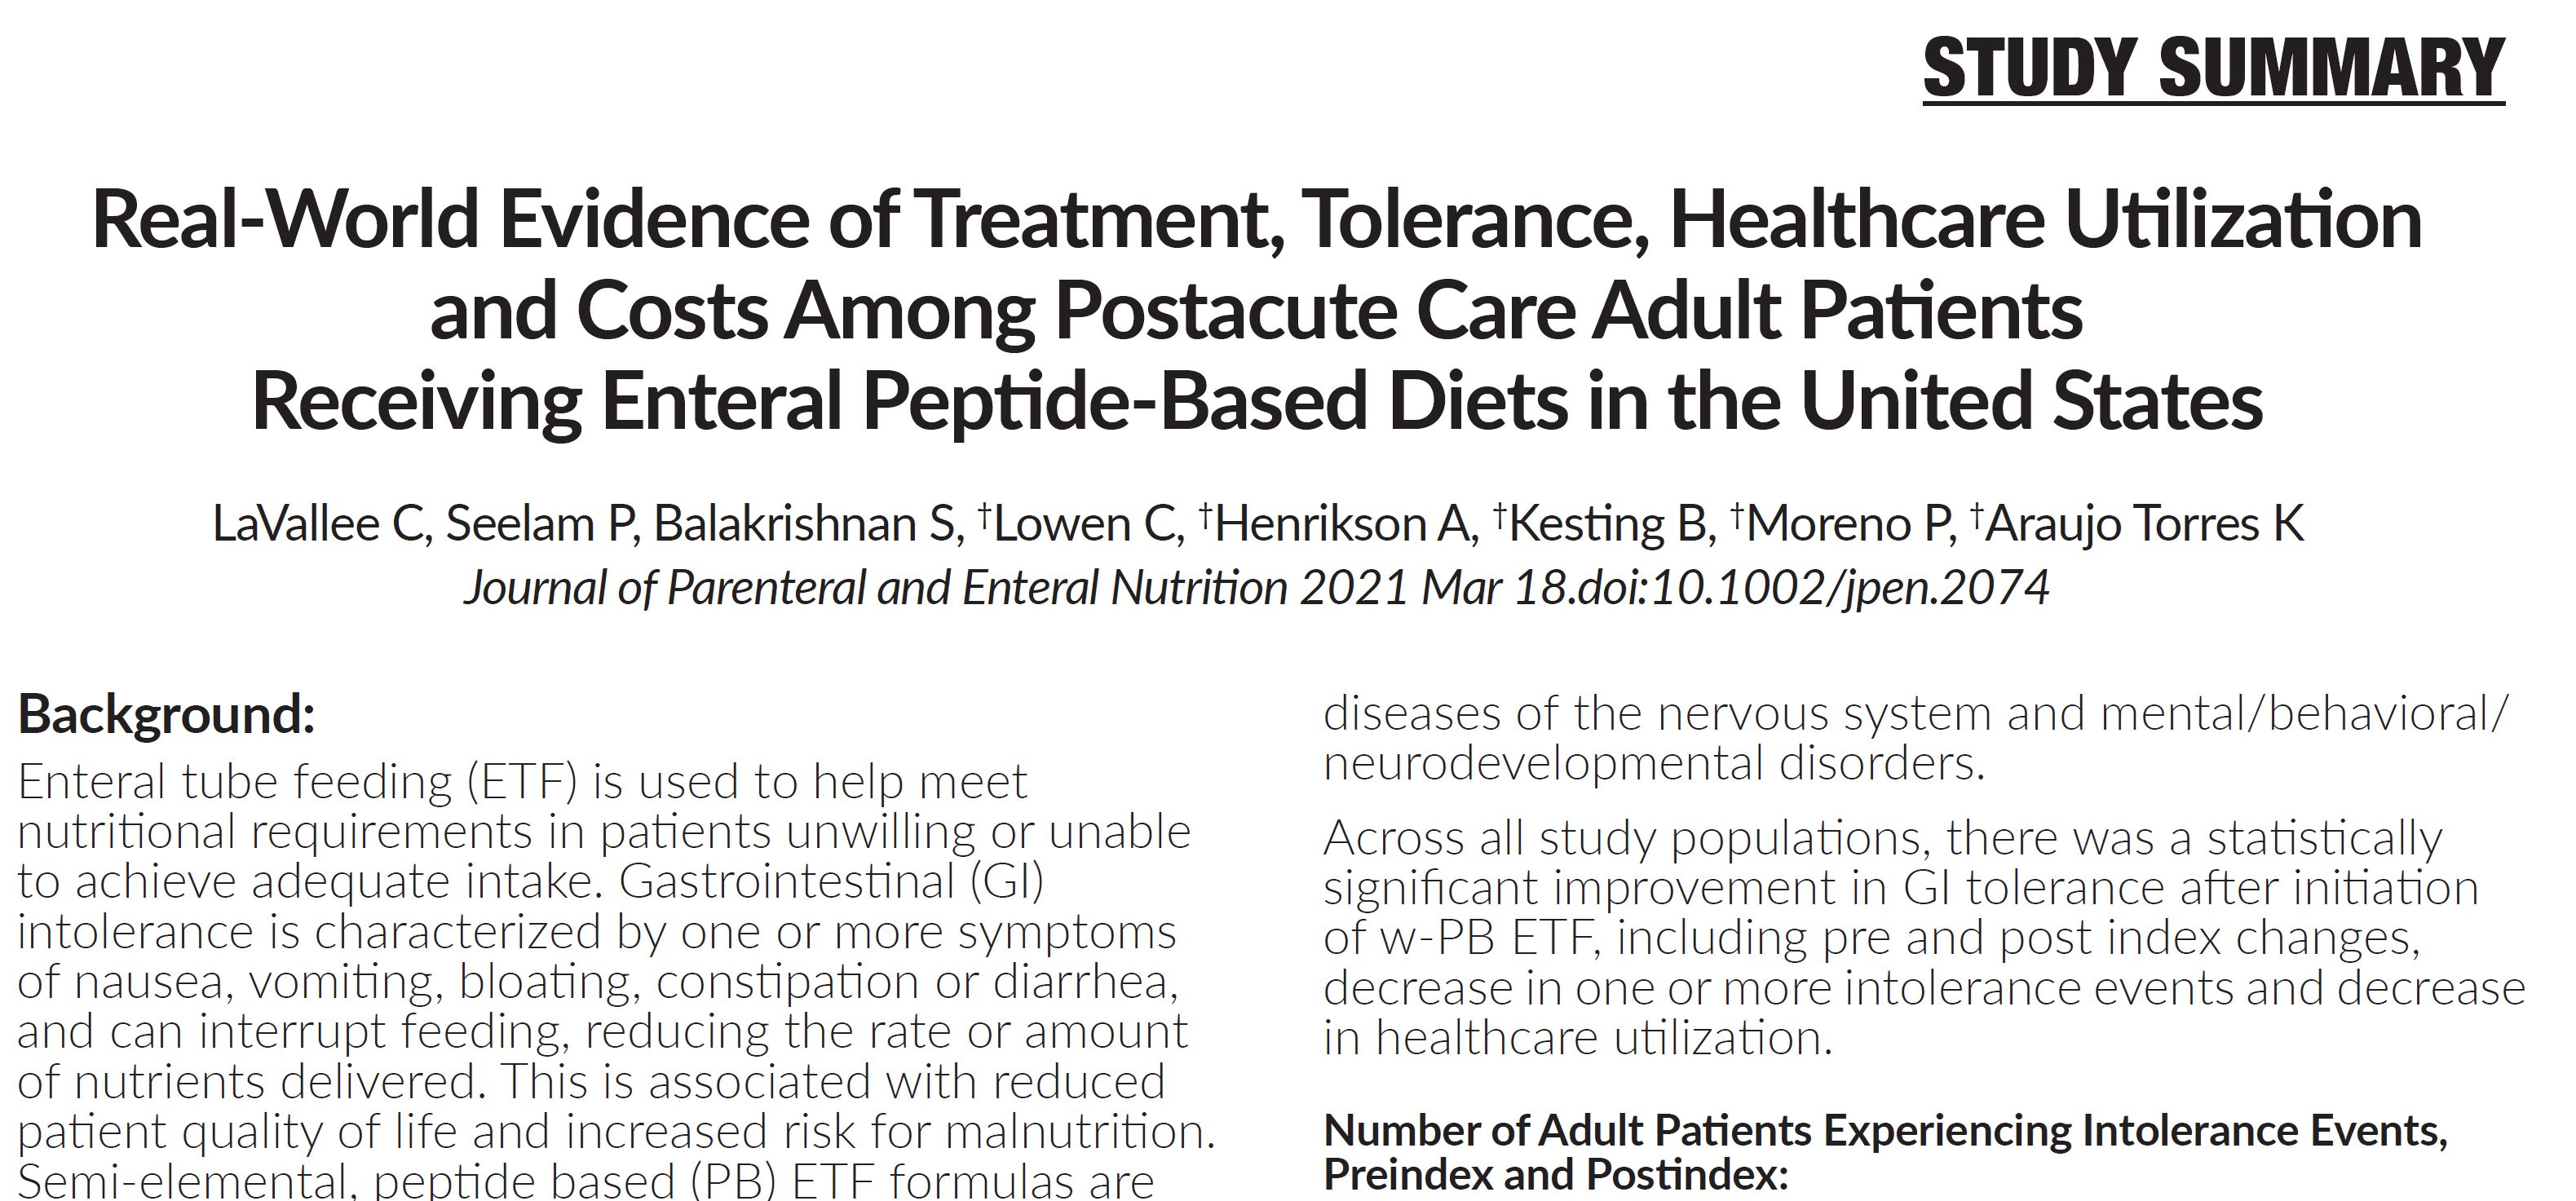 Real-World Evidence of Treatment, Tolerance, Healthcare Utilization and Costs Among Postacute Care Adult Patients Receiving Enteral Peptide-Based Diets in the United States